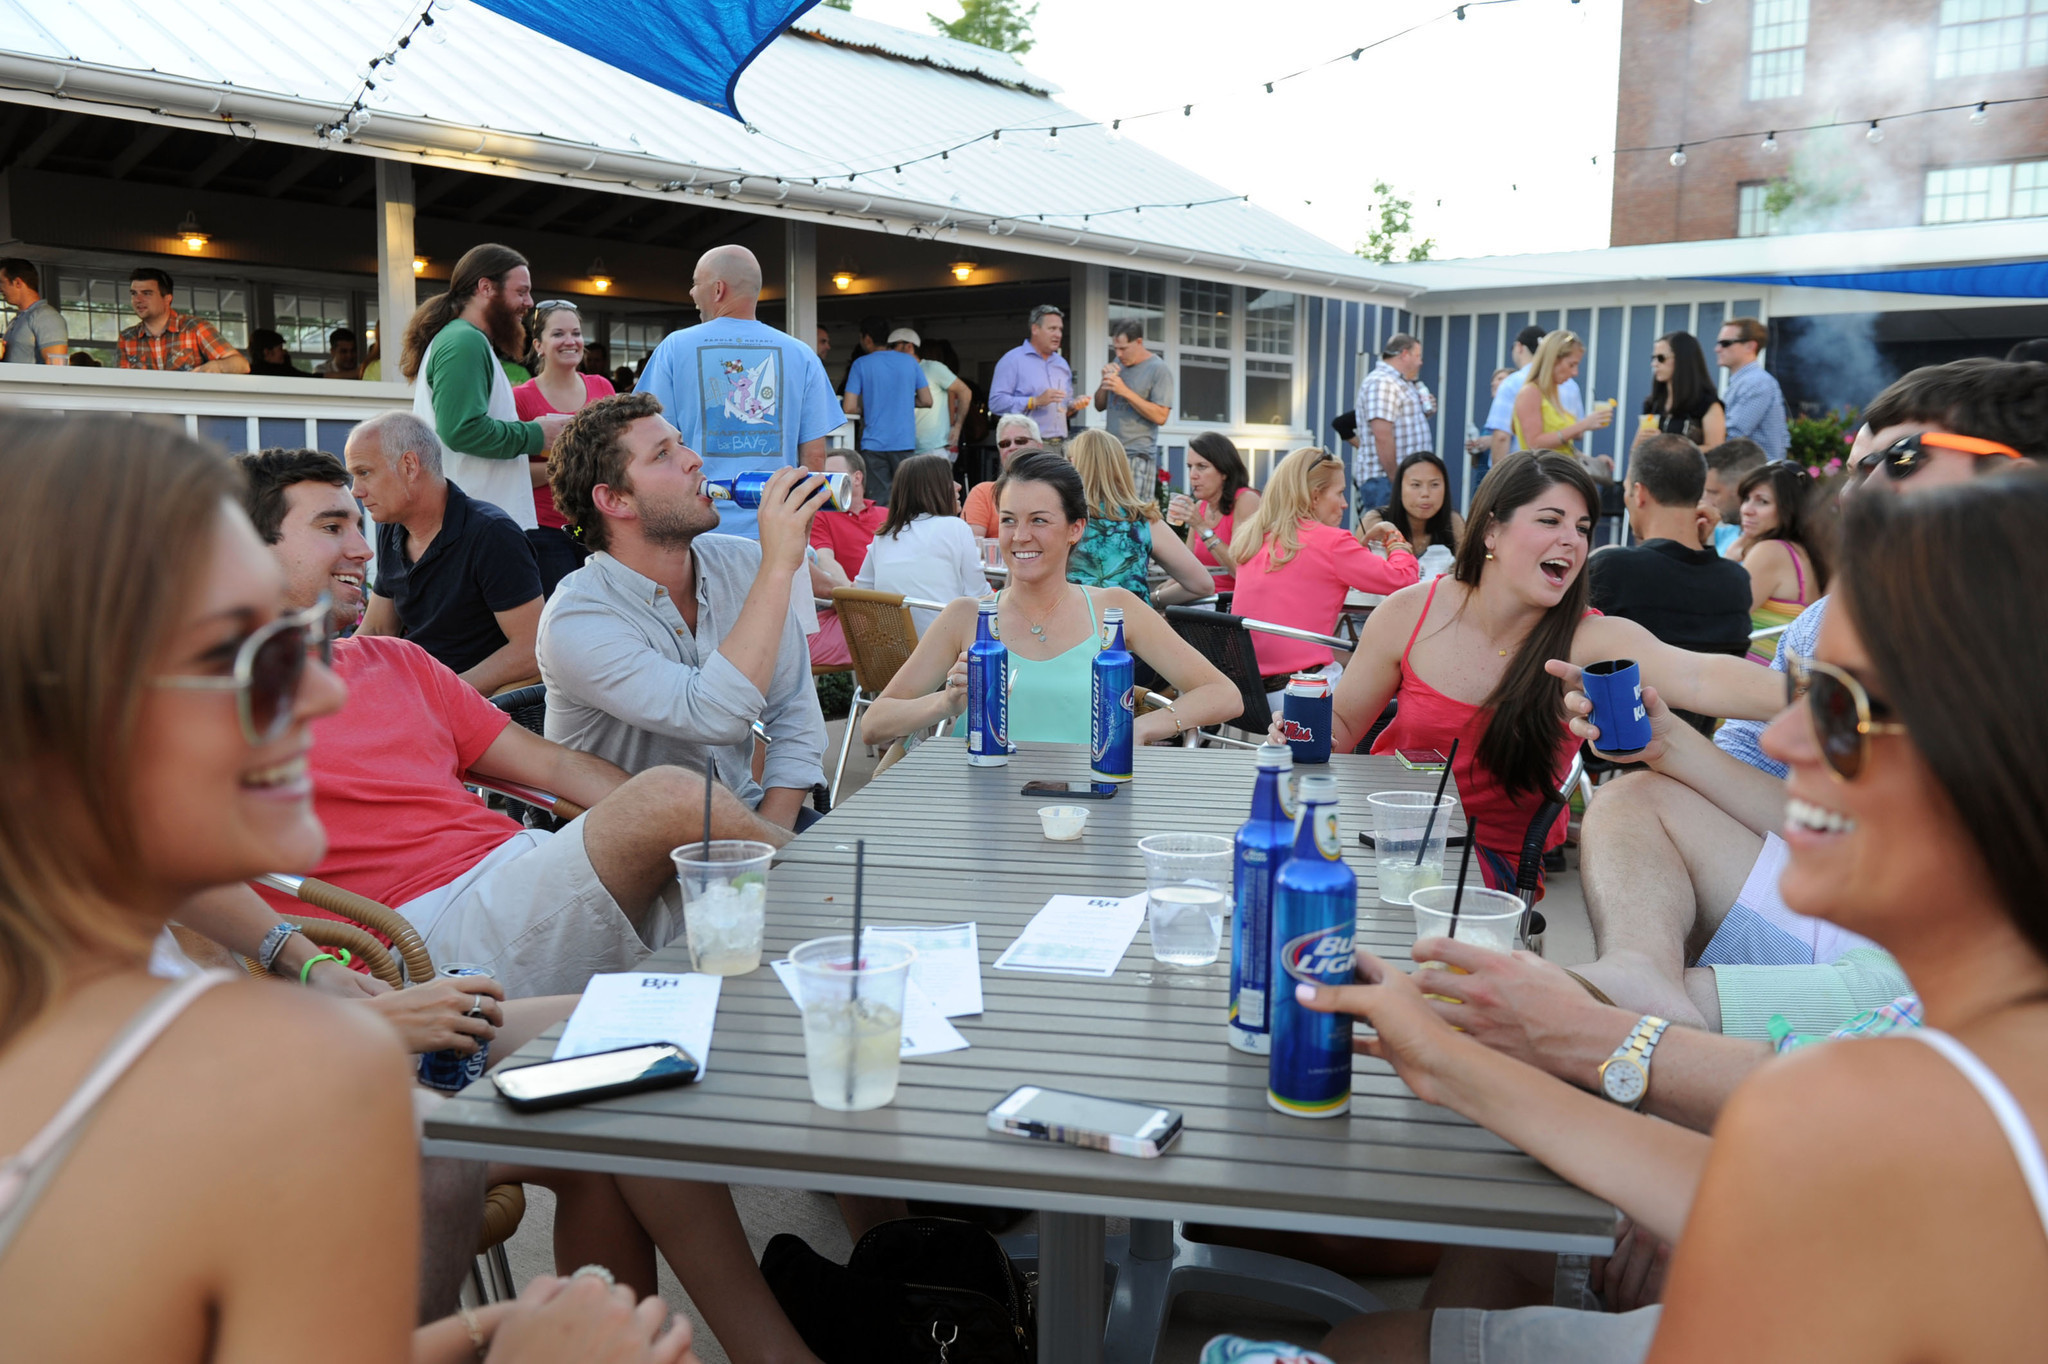 Patrons enjoy the patio area at Boathouse Canton on a Friday evening.